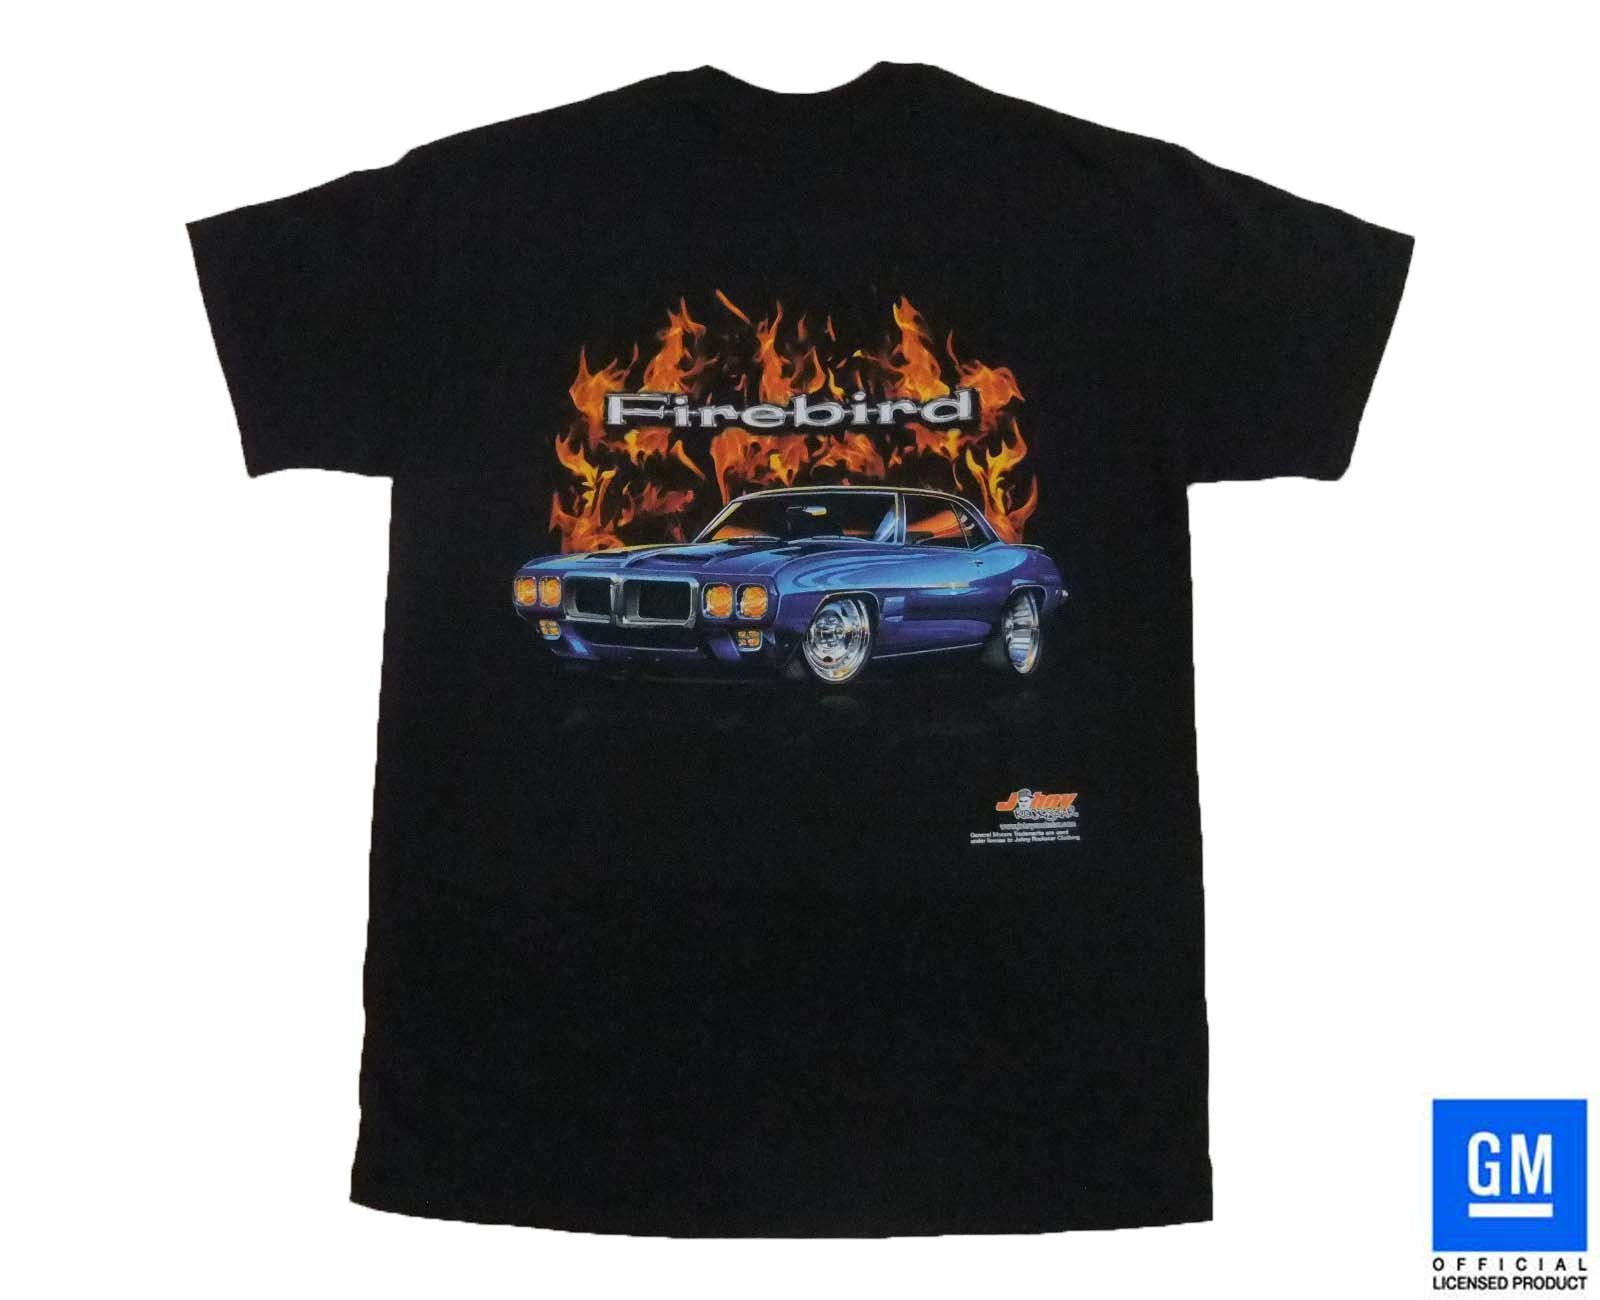 69 FIREBIRD FLAME T-SHIRT BLACK